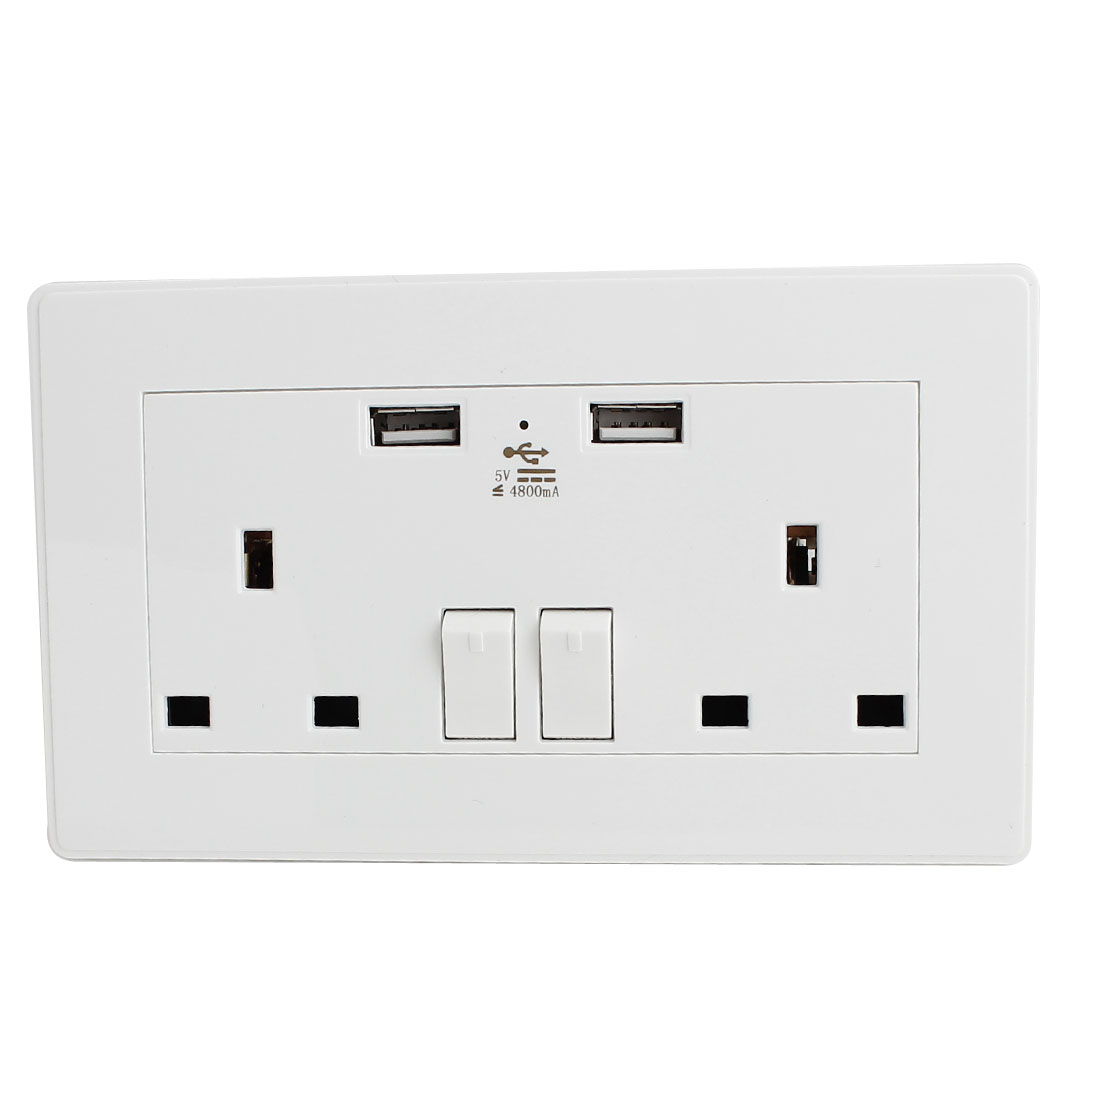 Dual AC 110V-250V UK Socket 2 USB Port 5VDC 4800mA Charger Charging Power Switch Wall Outlet